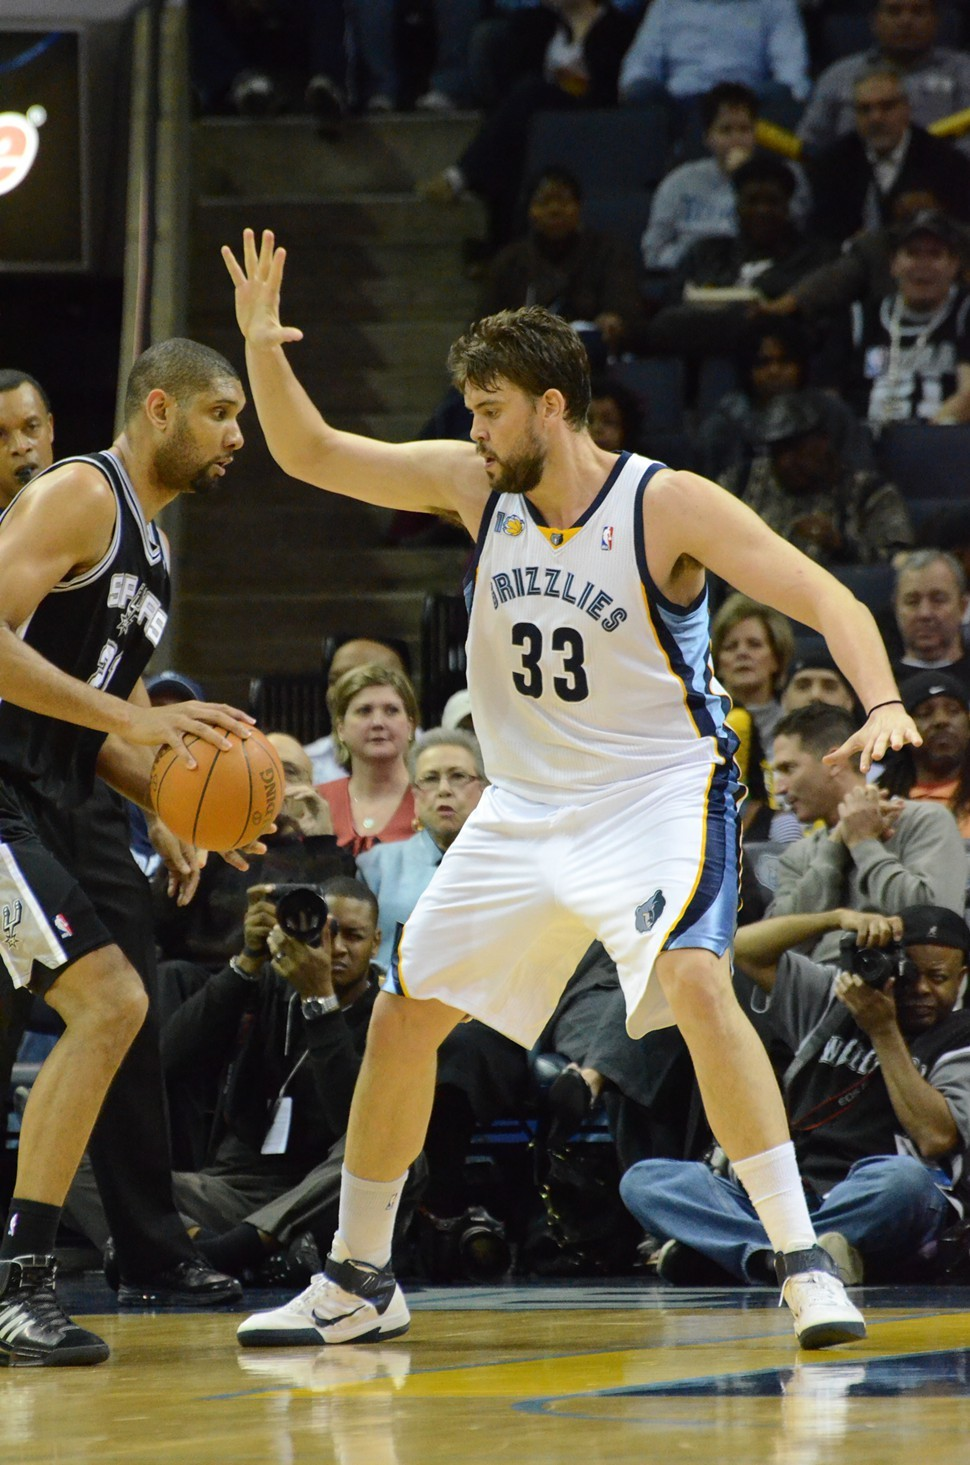 Marc Gasol got the best of Tim Duncan last spring. Monday night, it was Duncans turn, but was still a great match-up.